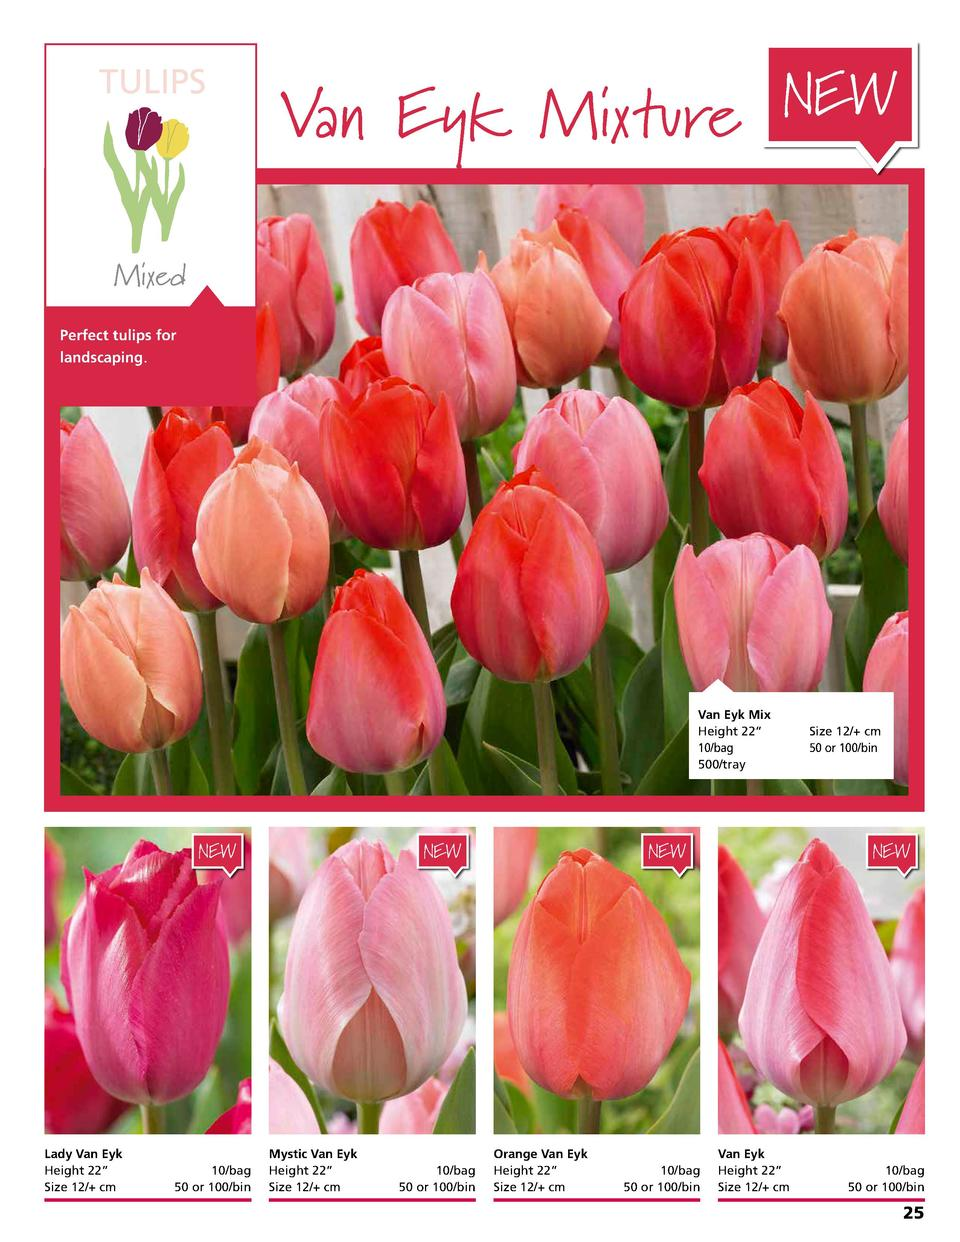 TULIPS  Van Eyk Mixture NEW  Mixed Perfect tulips for landscaping.  Van Eyk Mix Height 22      10 bag   500 tray  NEW  Lad...